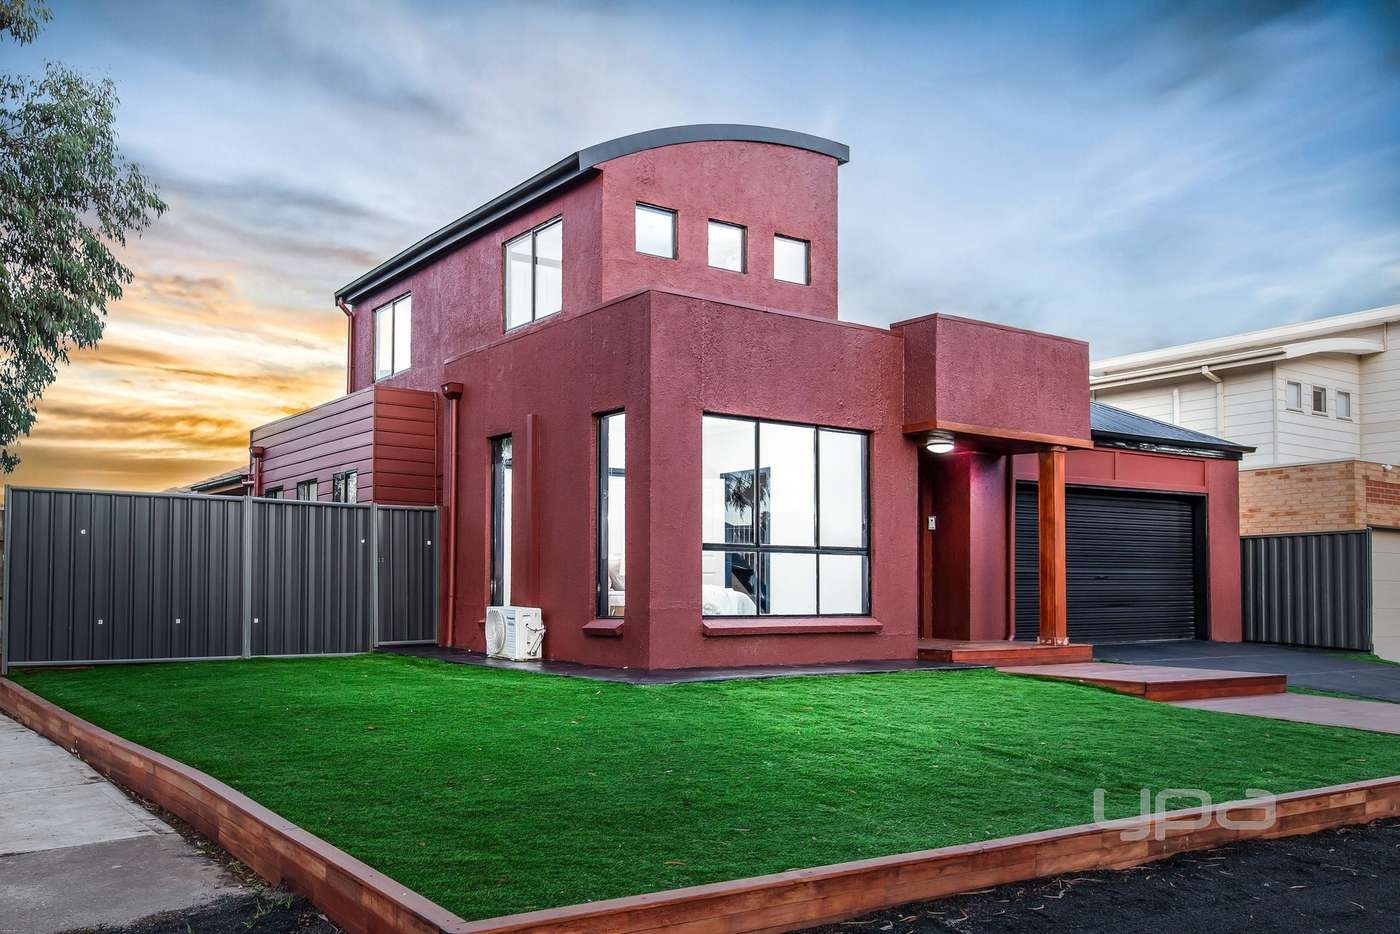 Main view of Homely house listing, 33 Pro Hart Way, Caroline Springs VIC 3023